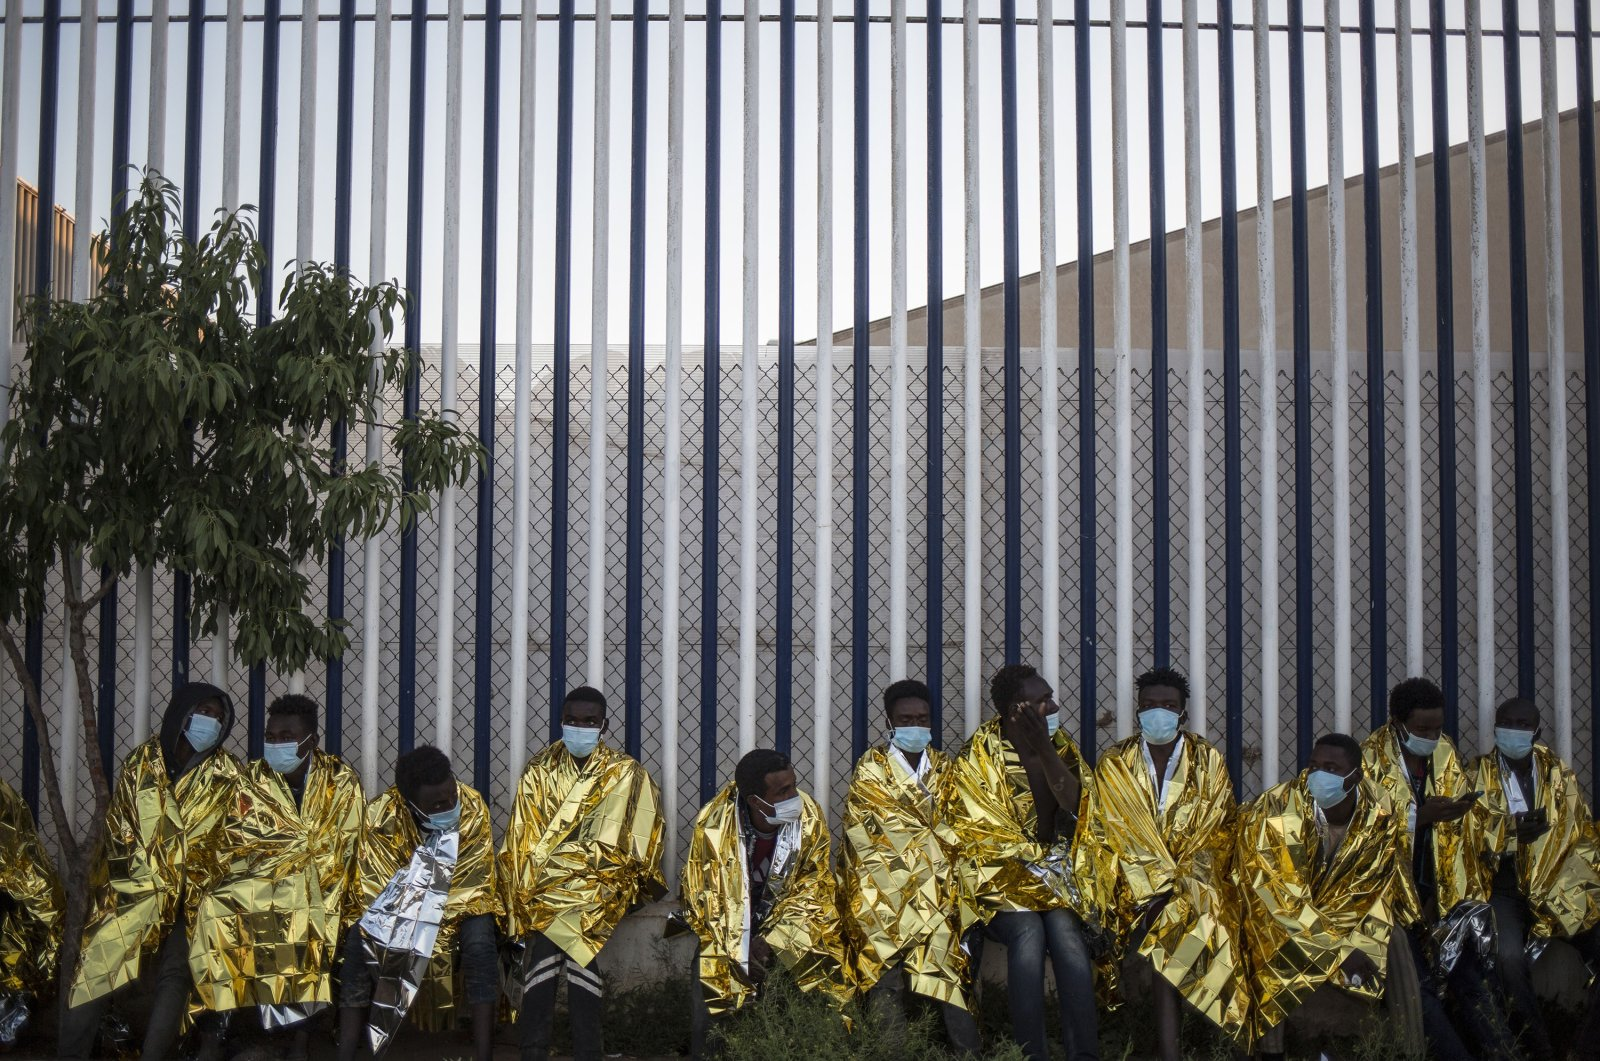 A group of migrants sits wrapped in thermal blankets at a holding center for migrants in the Spanish North African enclave of Melilla, Spain, May 18, 2021. (AP Photo)